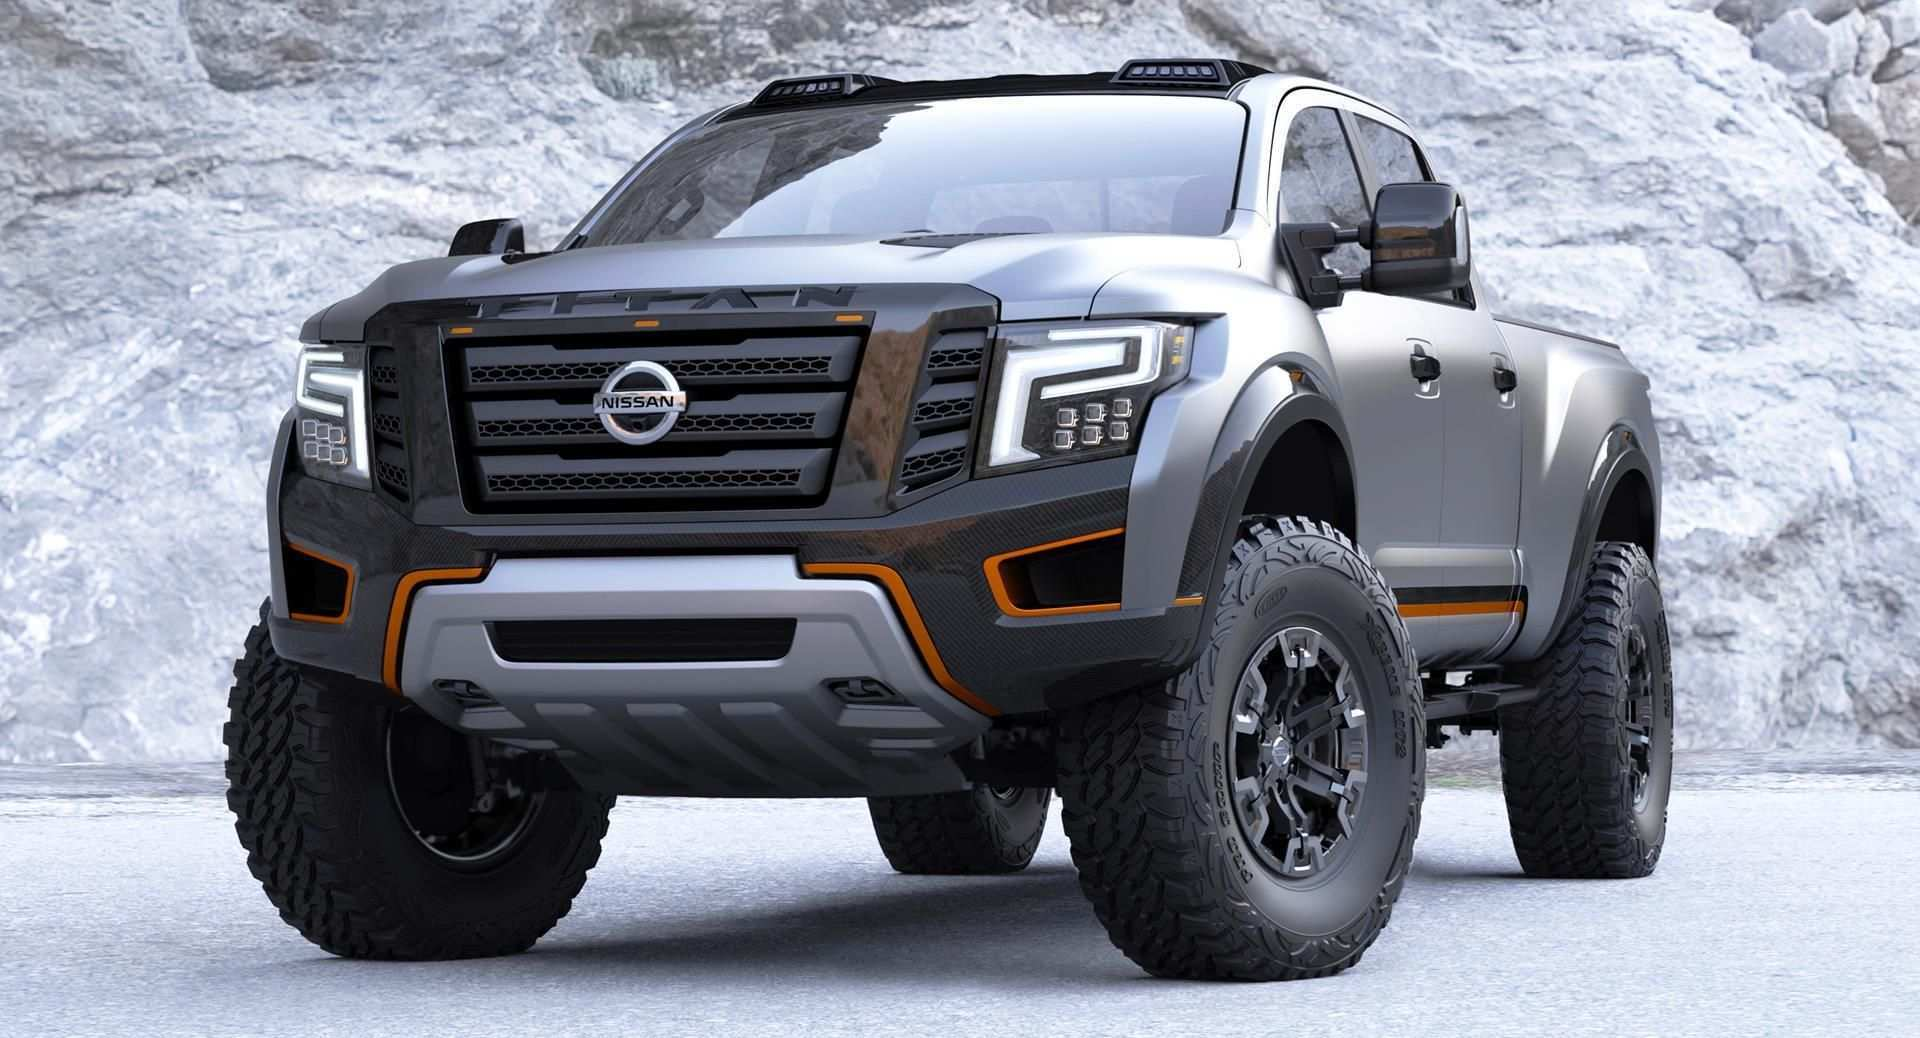 46 Best Review 2020 Nissan Titan Diesel Wallpaper by 2020 Nissan Titan Diesel